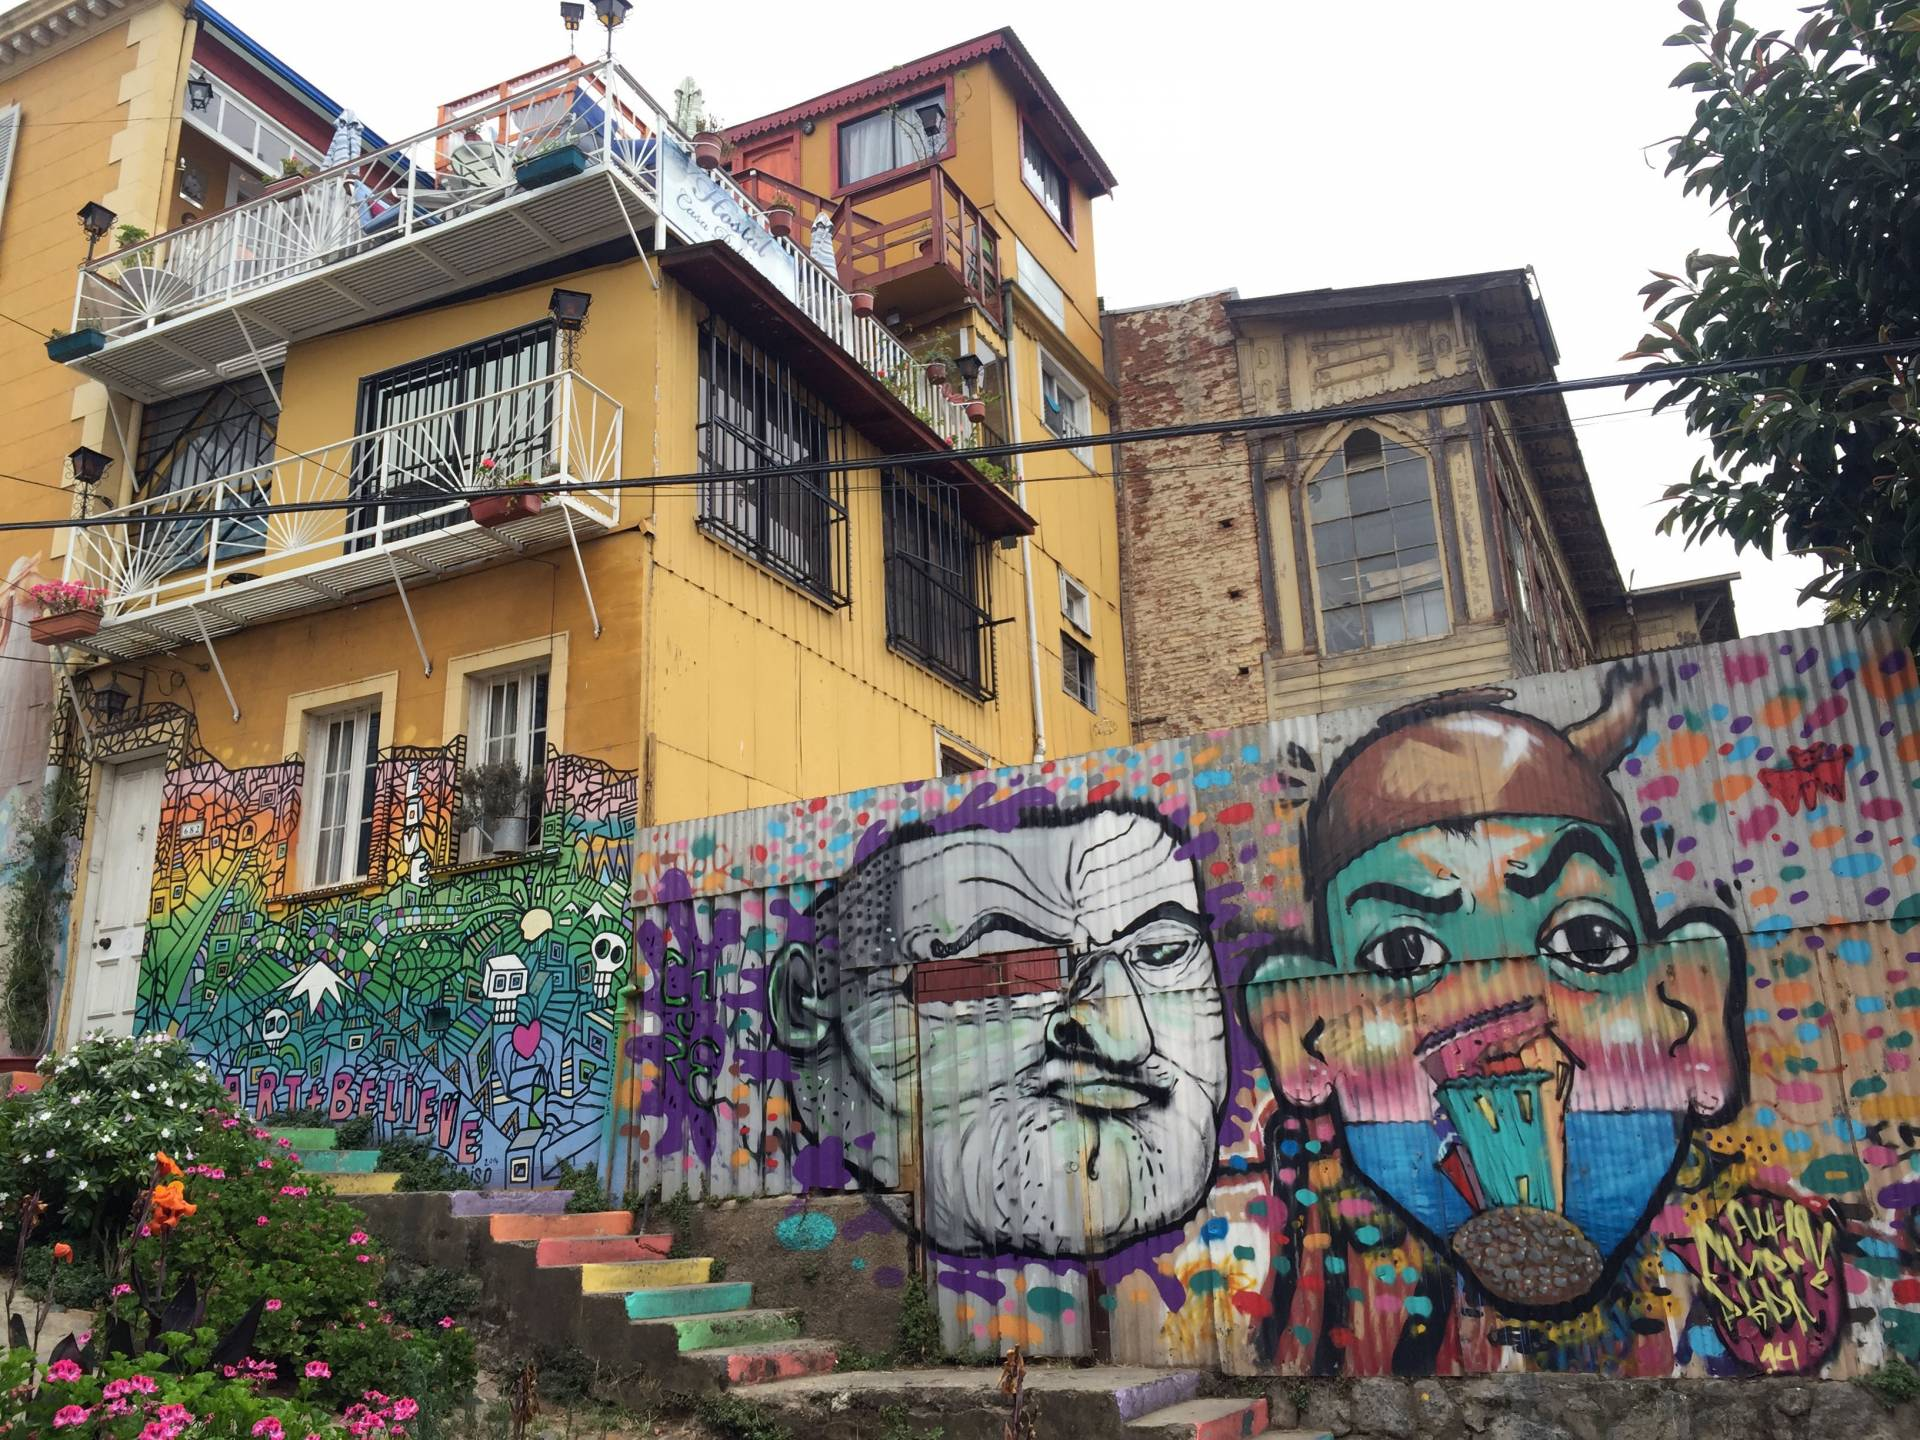 Street art in Valparaíso, Chile